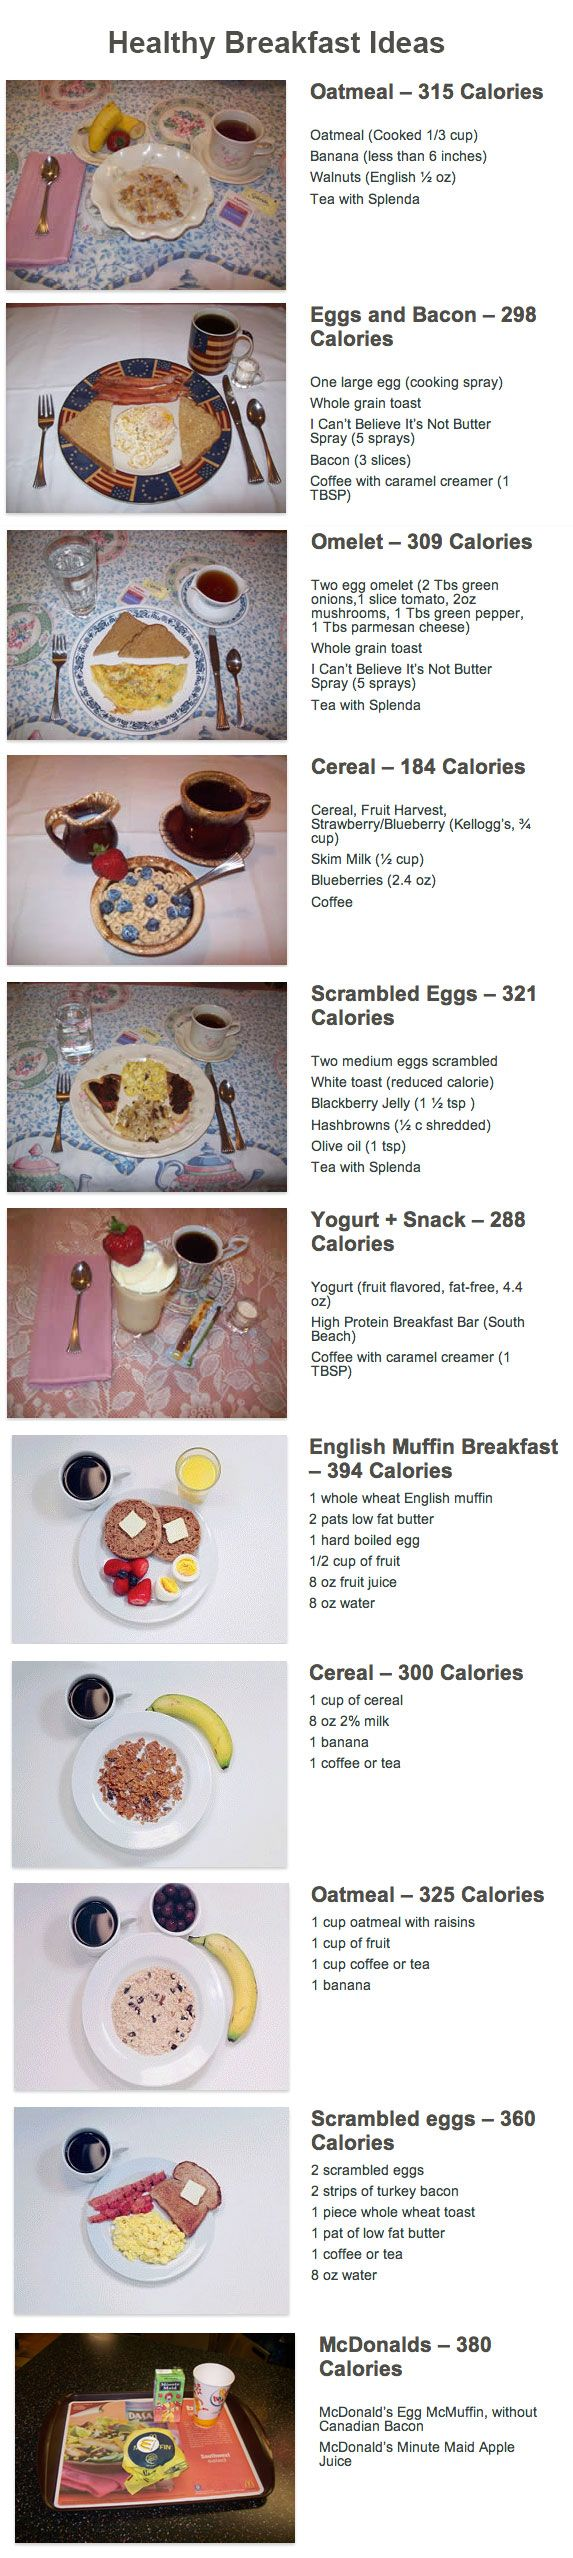 Healthy and Light Breakfast Ideas  Source: http://www.diet-blog.com/08/10_breakfast_ideas_with_photos.php http://www.diet-blog.com/07/what_do_300_calorie_meals_look_like.php/3